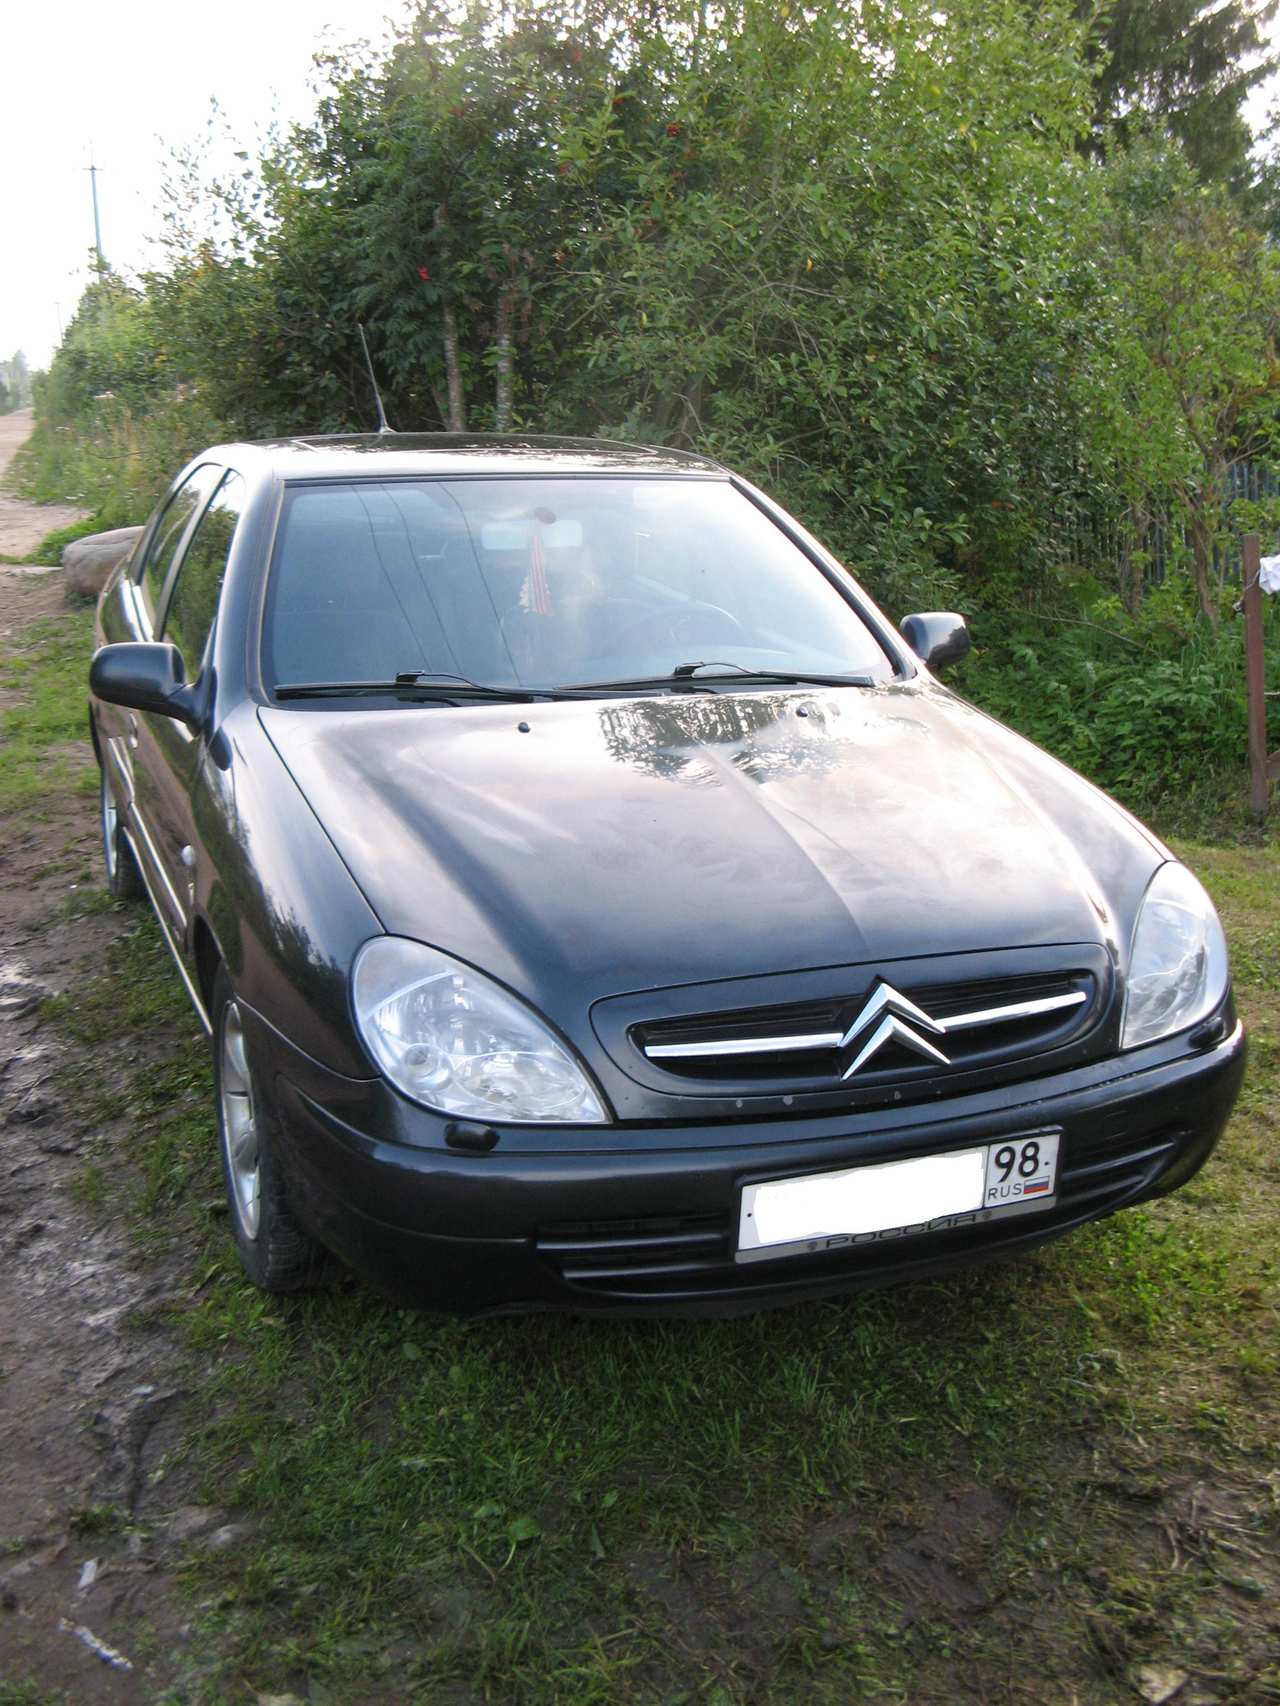 2002 citroen xsara pictures gasoline ff manual for sale. Black Bedroom Furniture Sets. Home Design Ideas